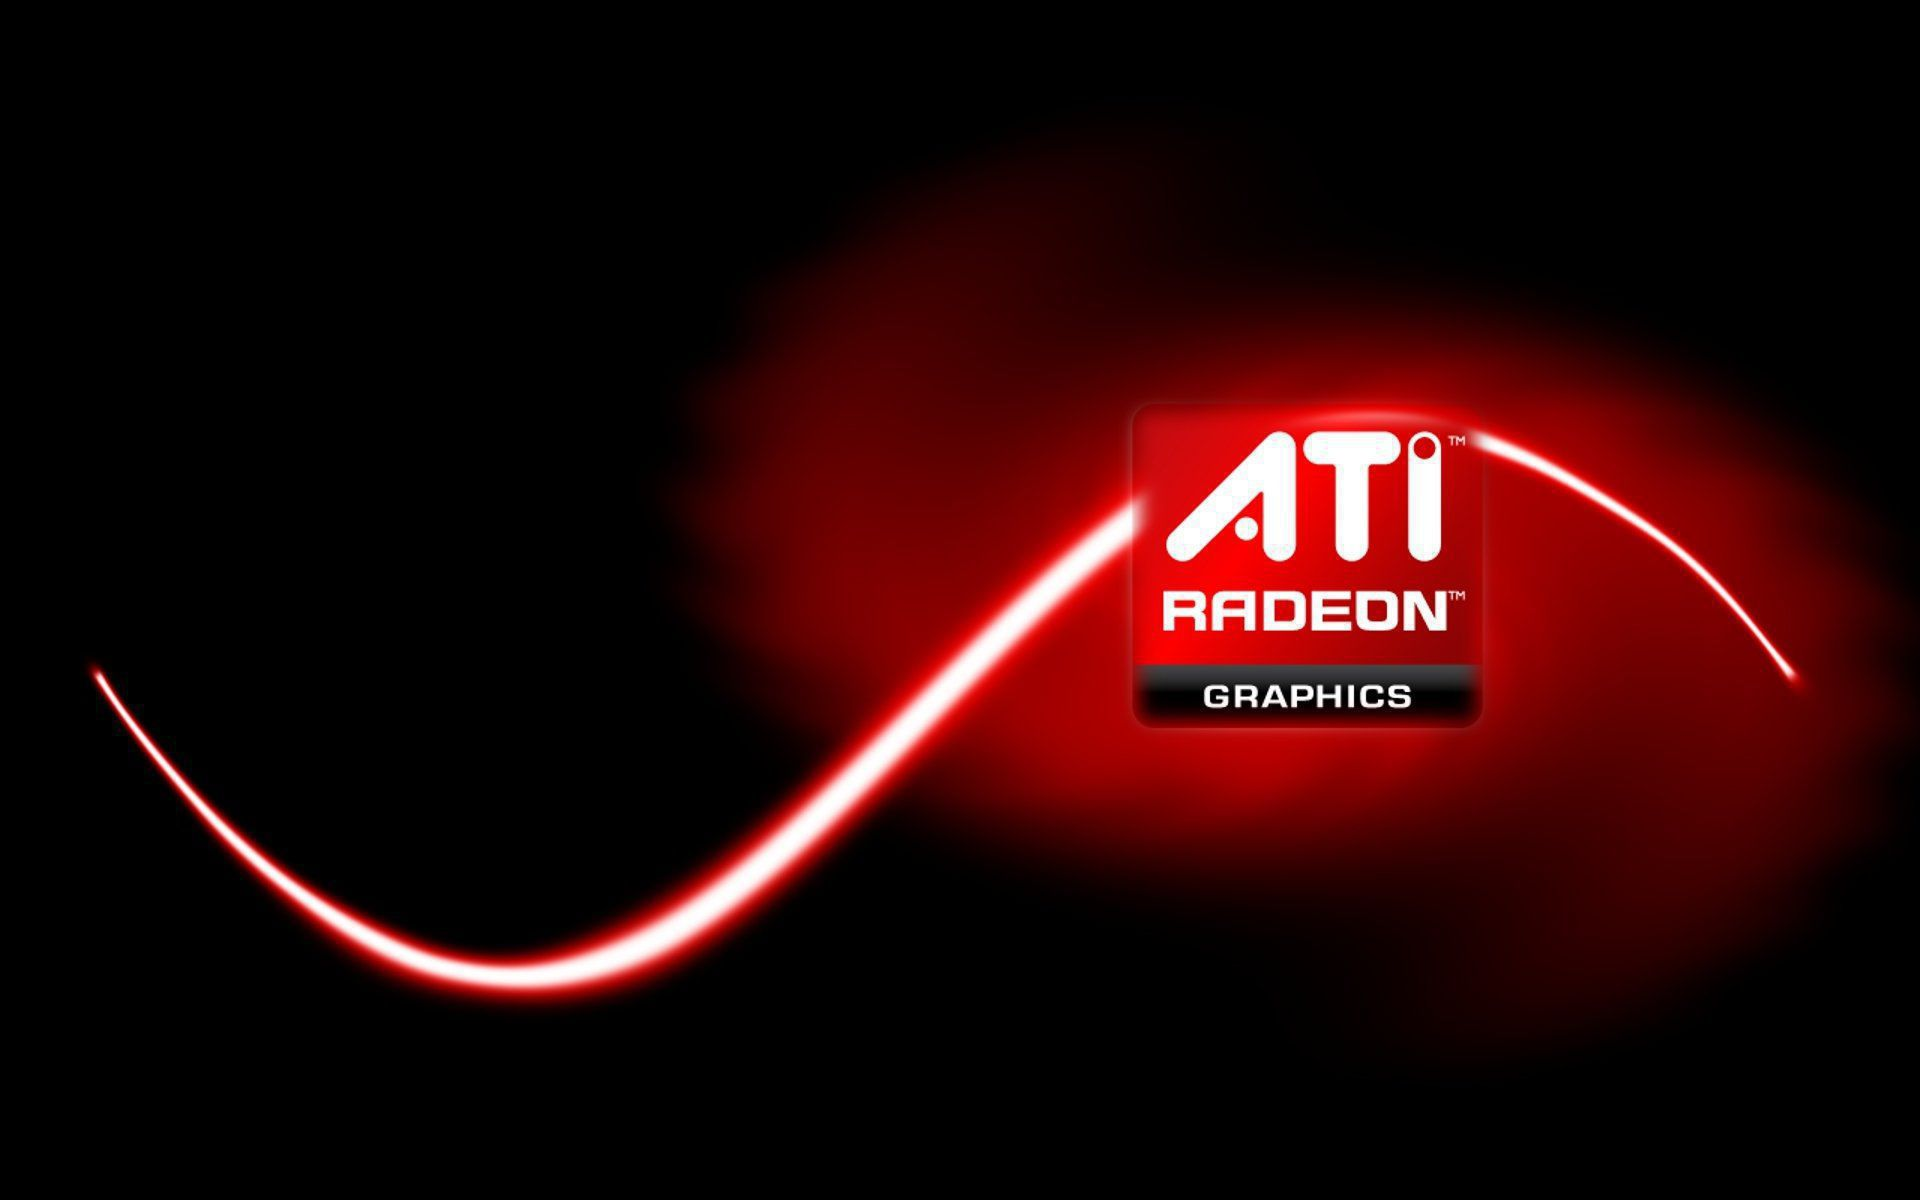 Ati Radeon High Definition Wallpapers